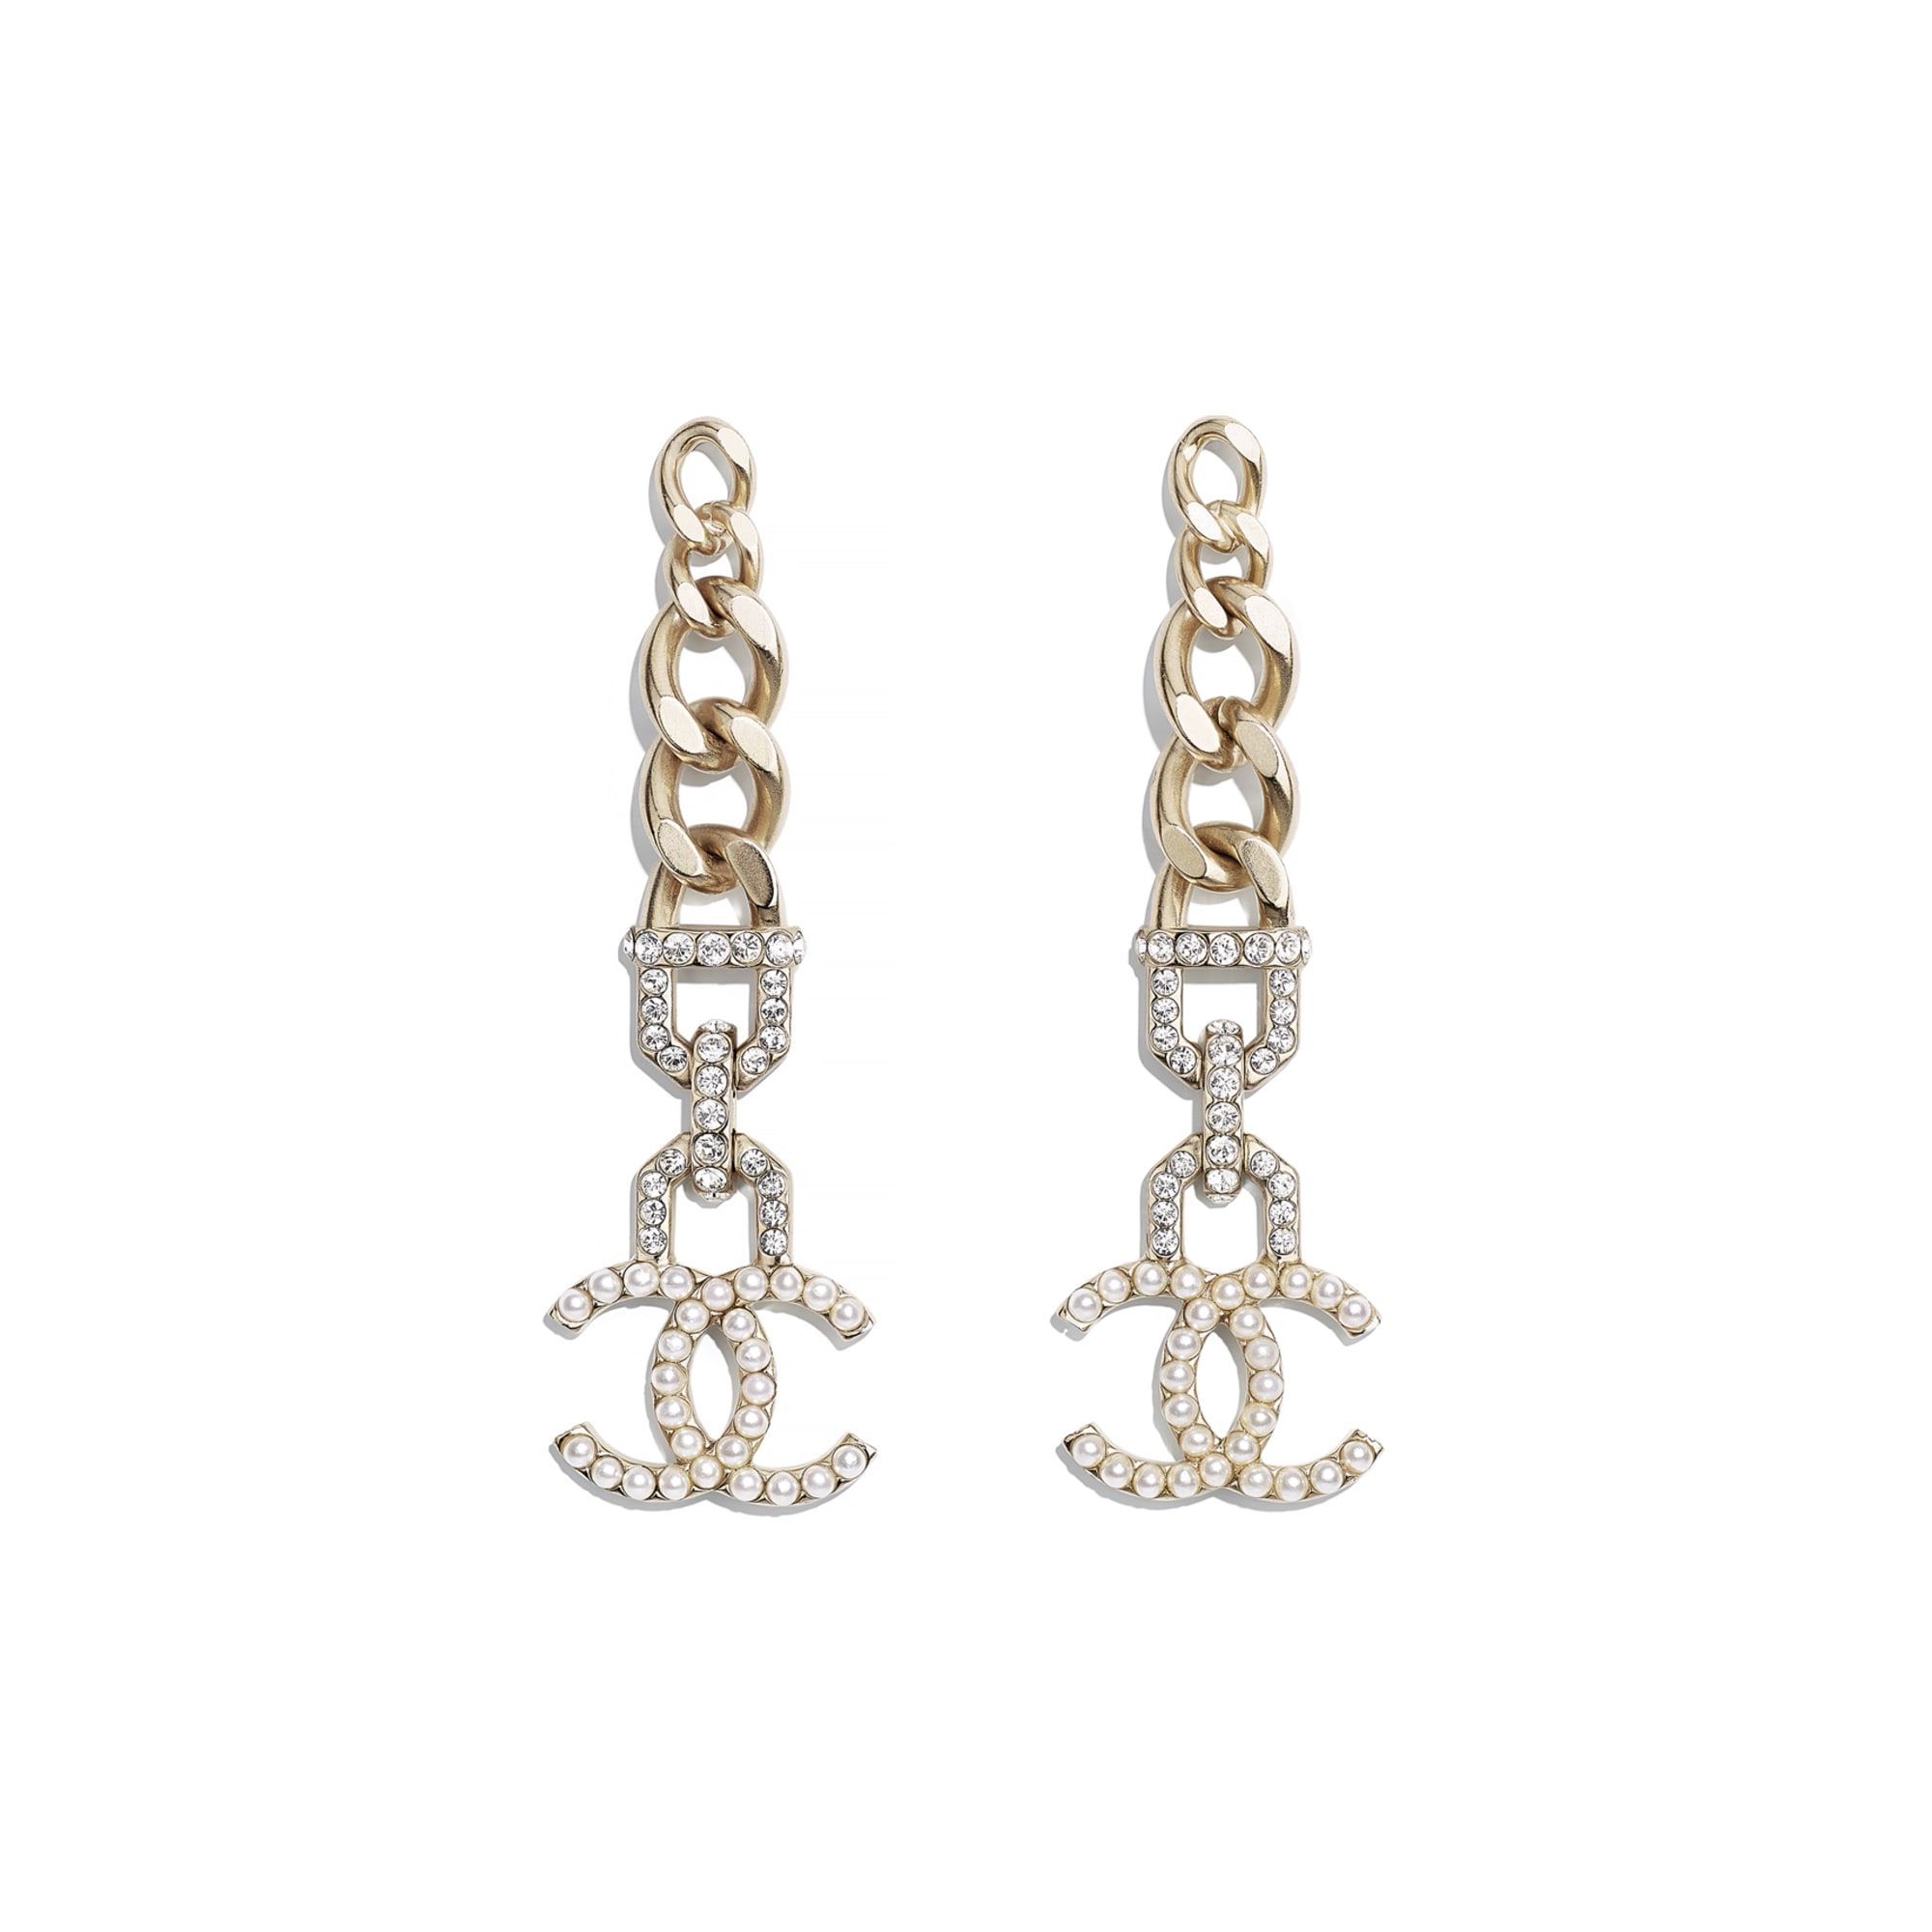 Earrings - Gold, Pearly White & Crystal - Metal, Imitation Pearls & Diamanté - CHANEL - Default view - see standard sized version